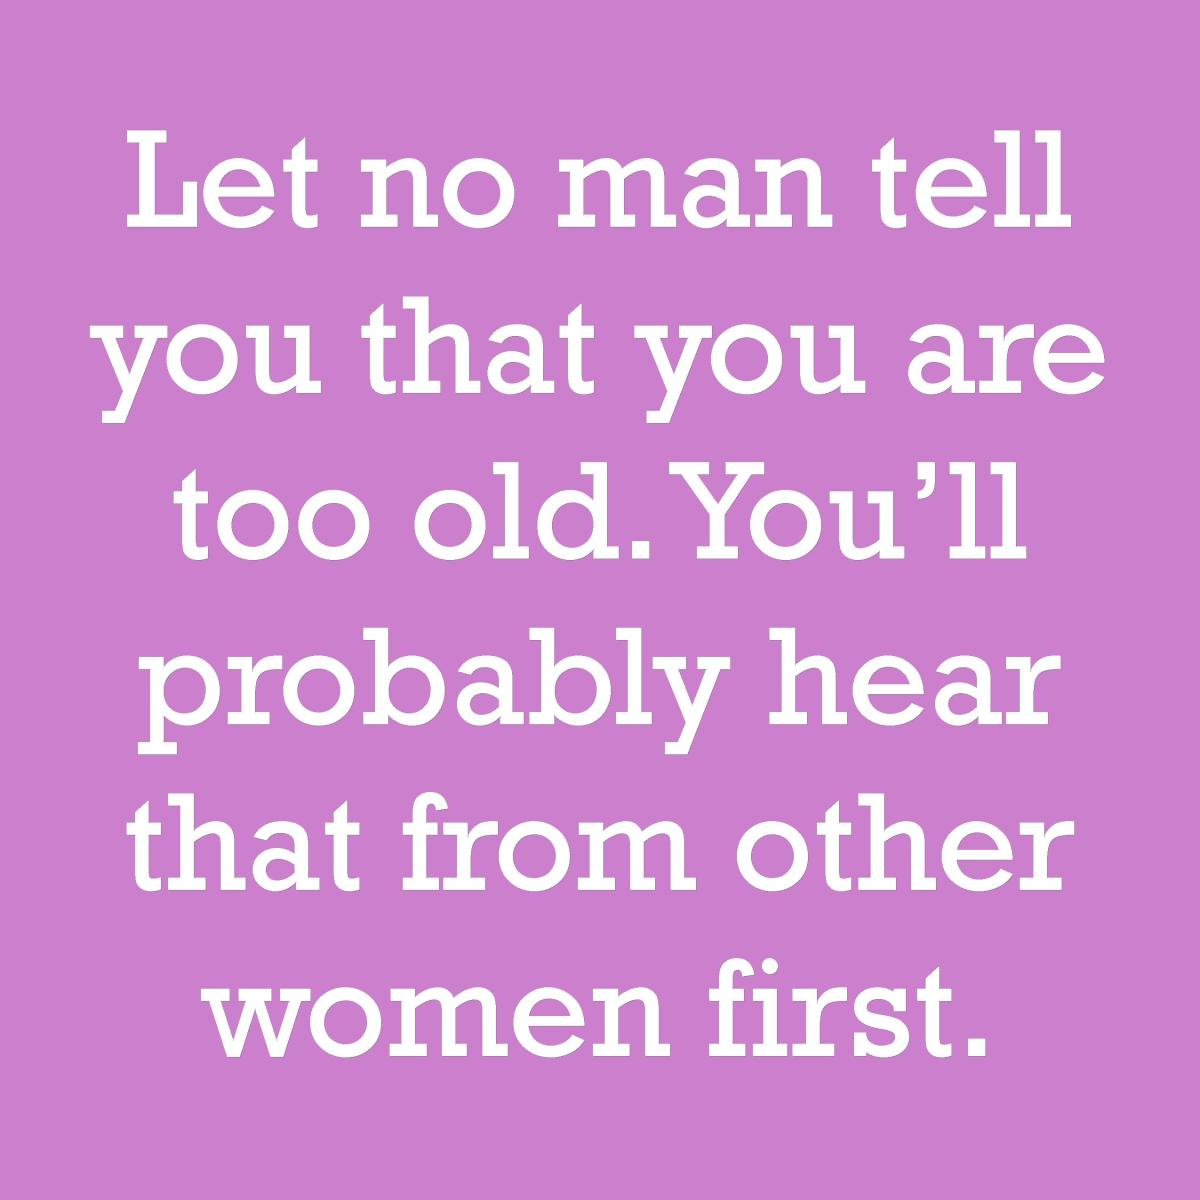 Let no man tell you that you are too old. You'll probably hear that from other women first.